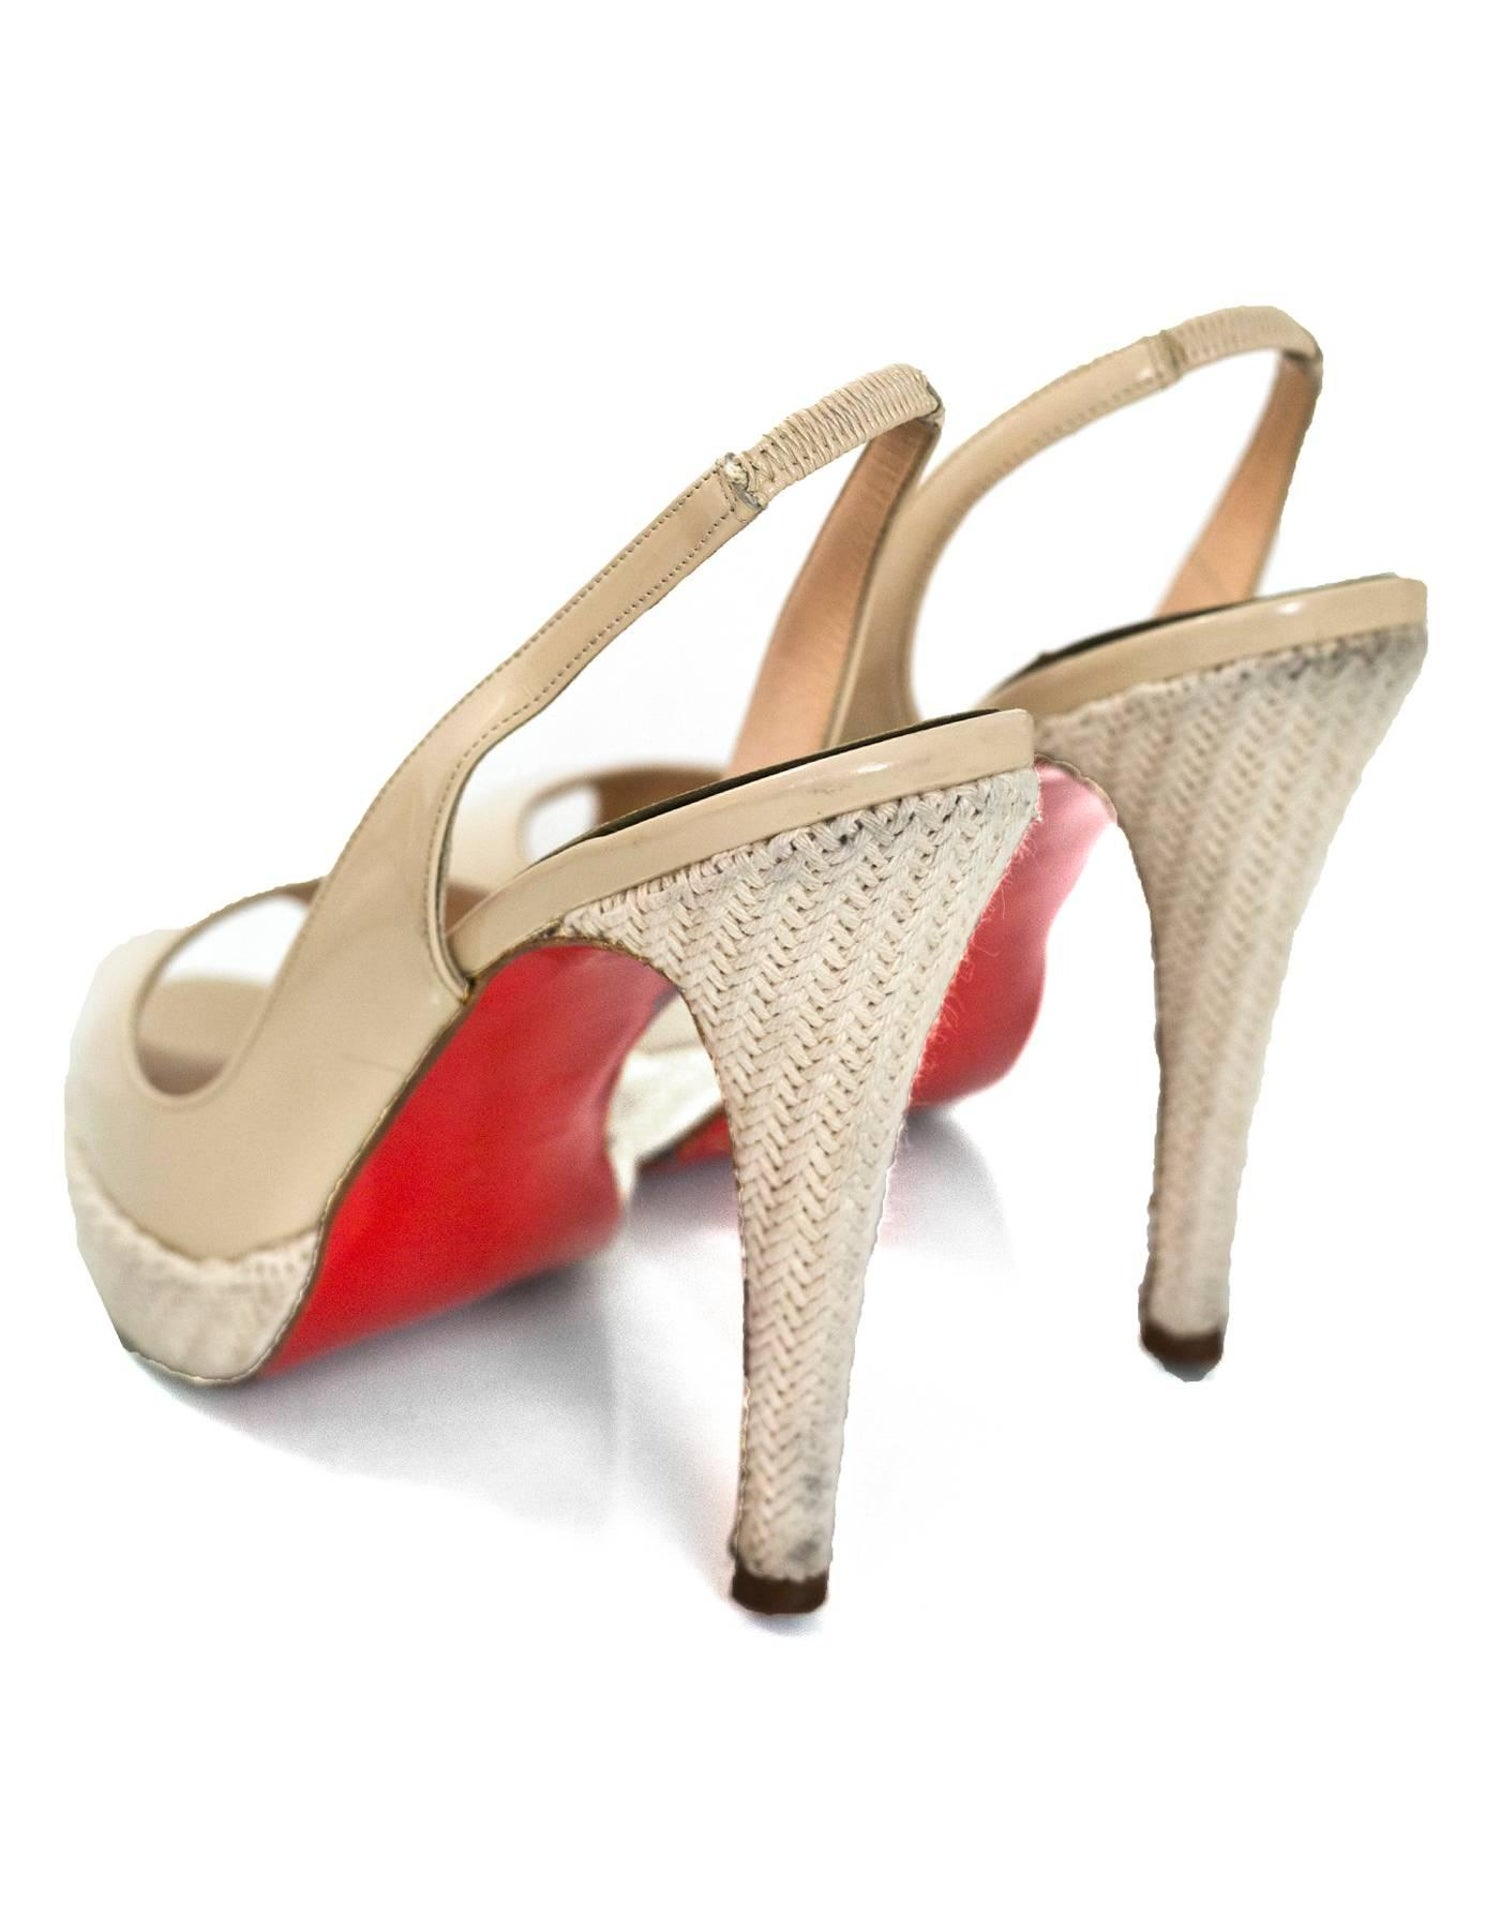 ddc5f0109a38 Christian Louboutin Beige Patent Peep-Toe Pumps Sz 40 For Sale at 1stdibs